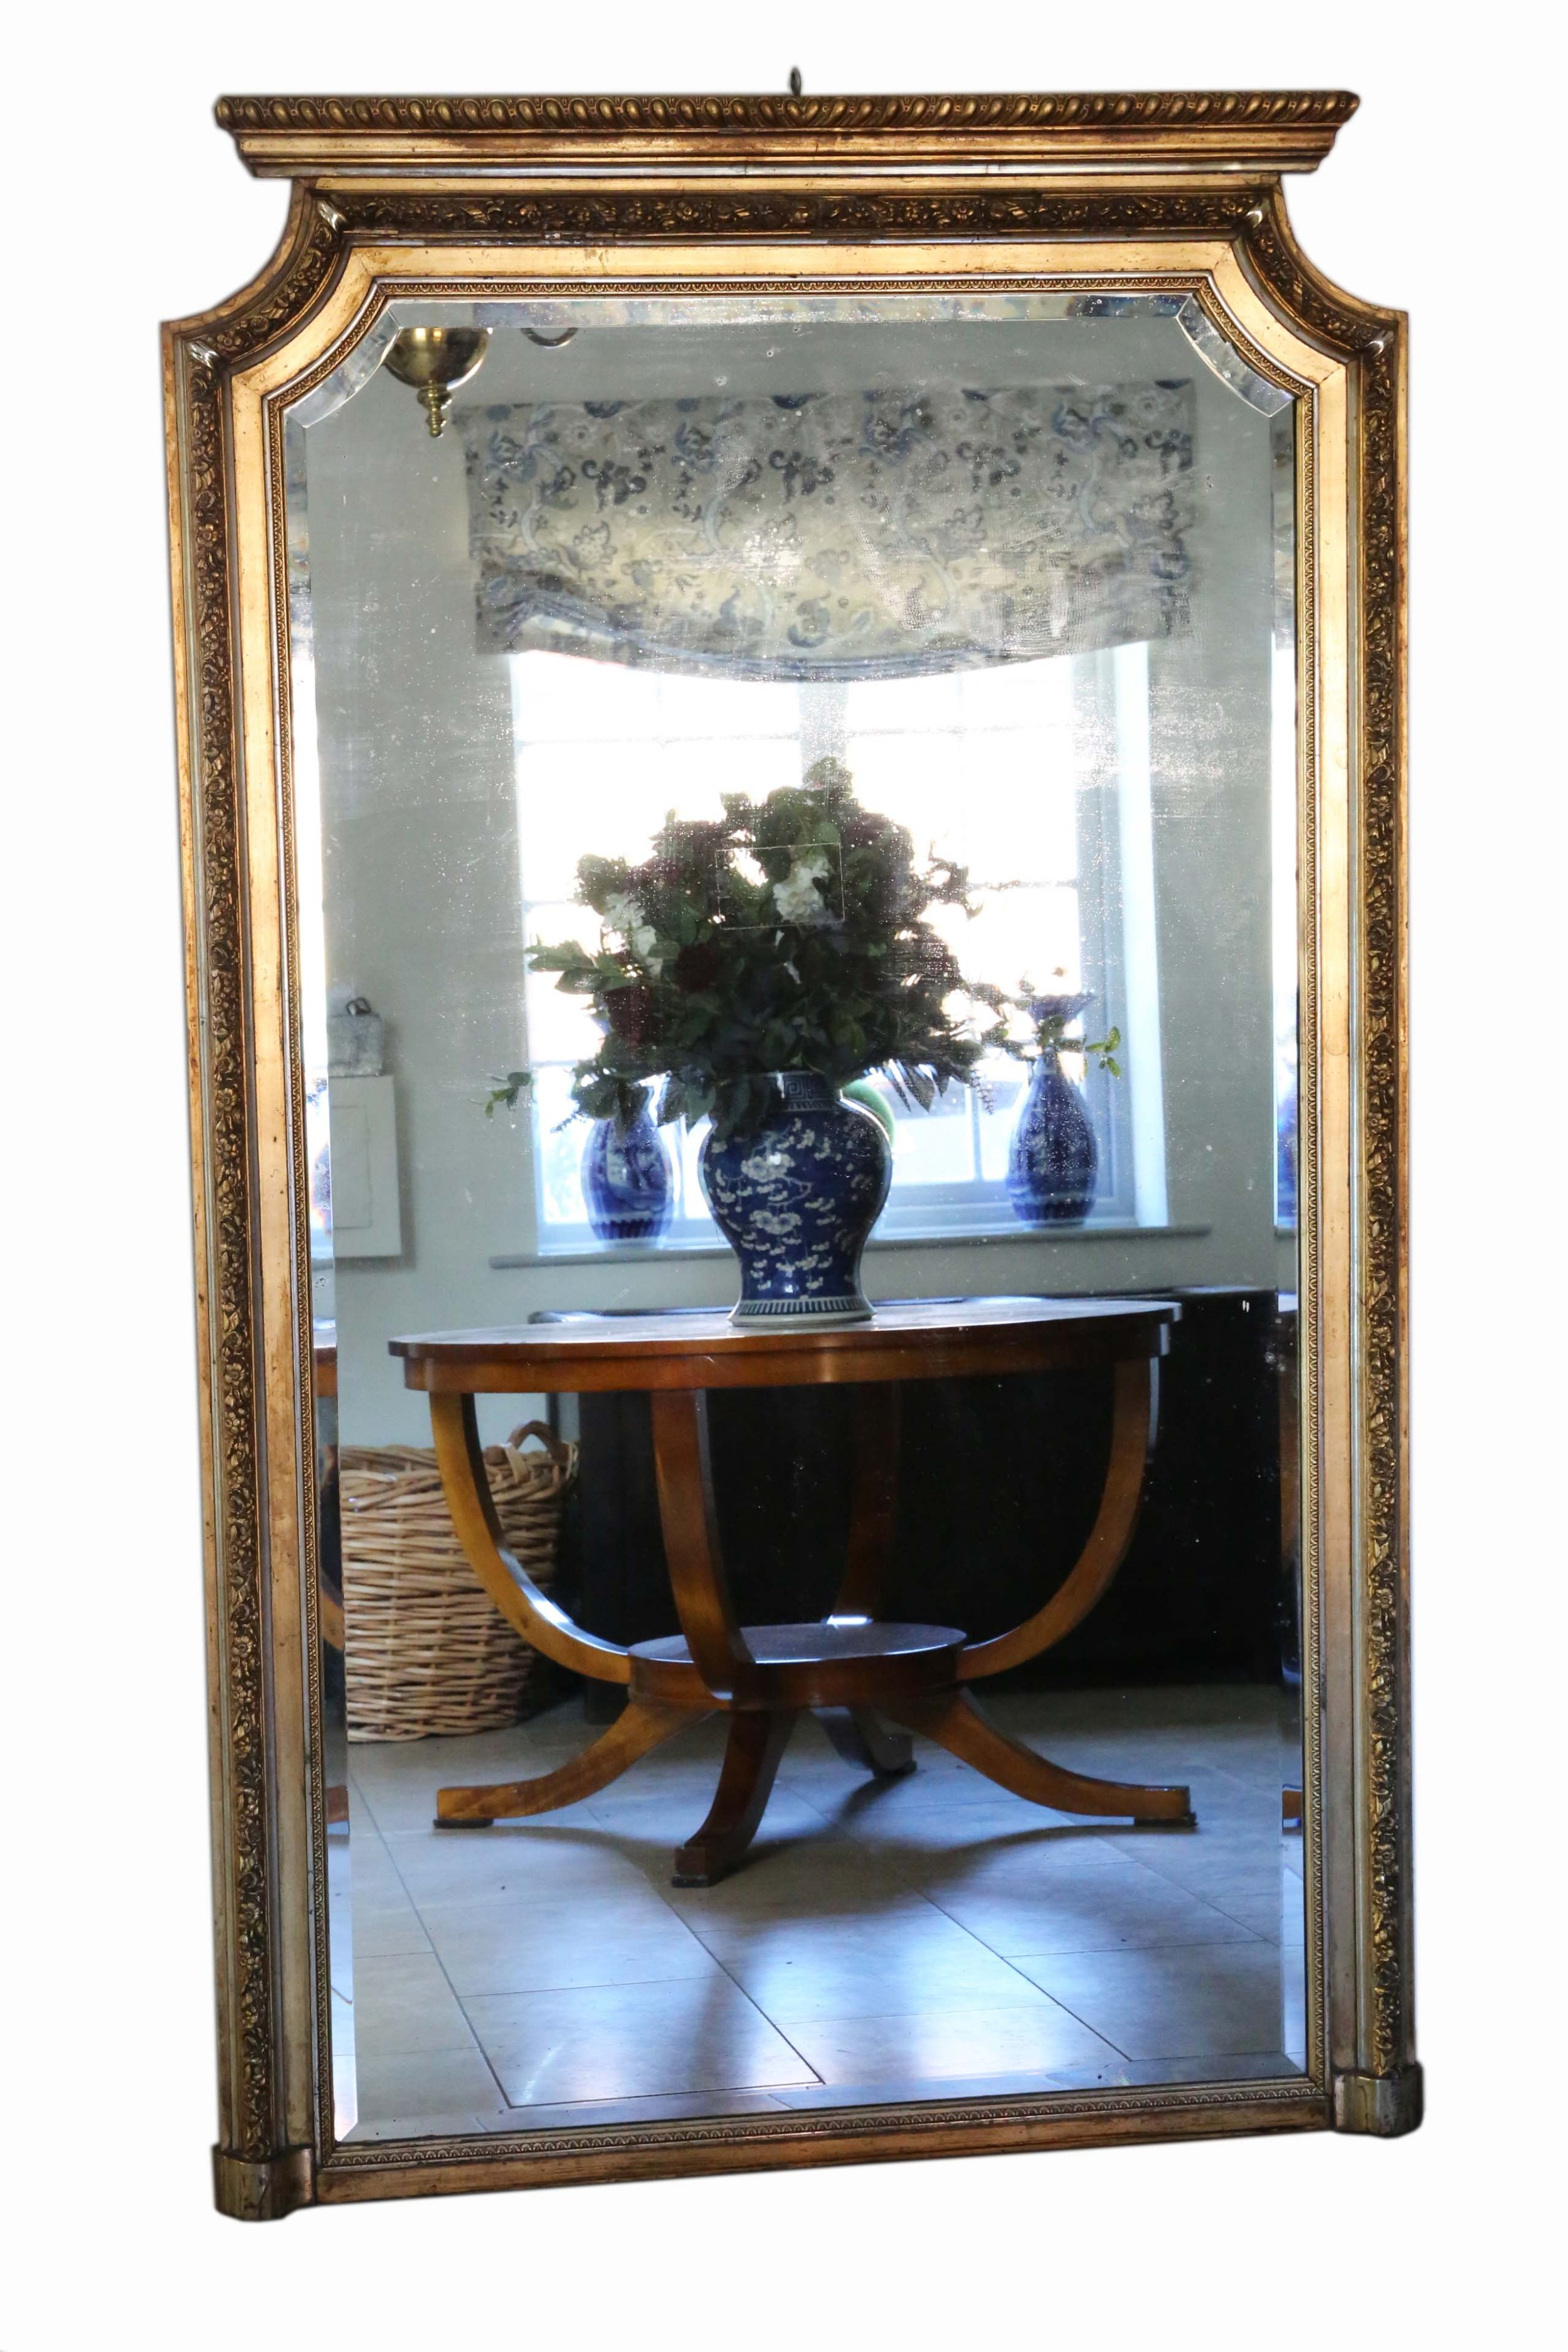 antique very large fine quality 19th century gilt wall mirror full height